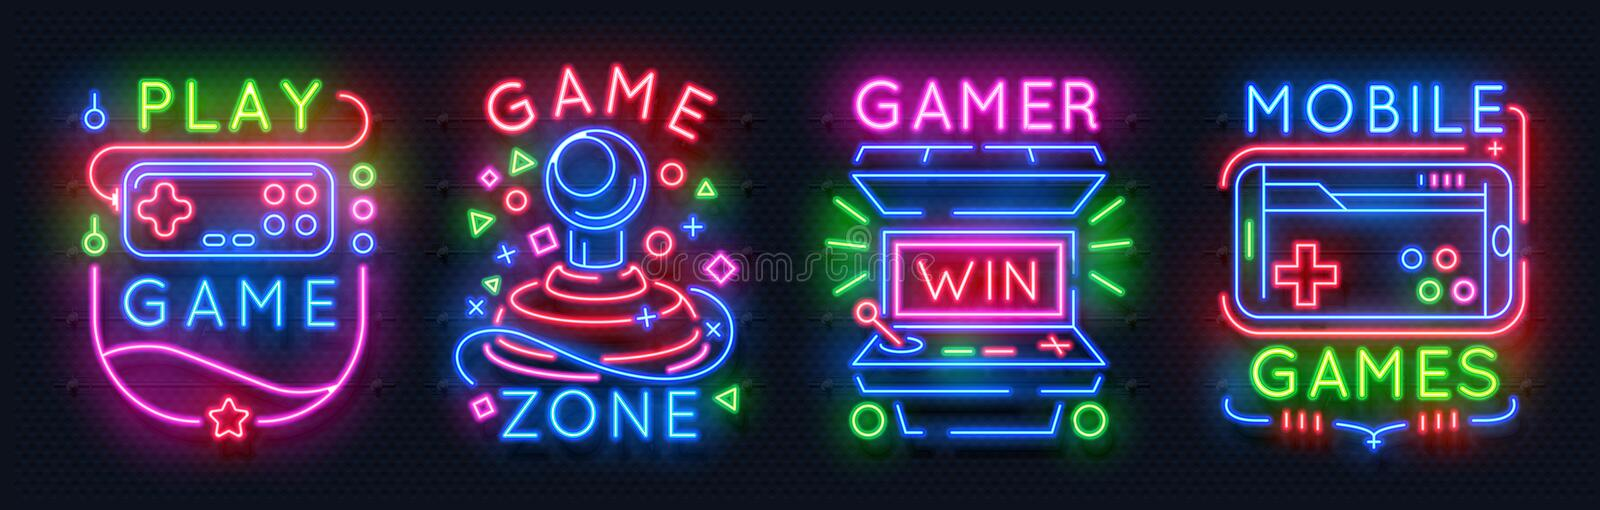 Neon game signs. Retro video games night light icons, gaming club emblems, arcade glowing posters. Vector game royalty free illustration